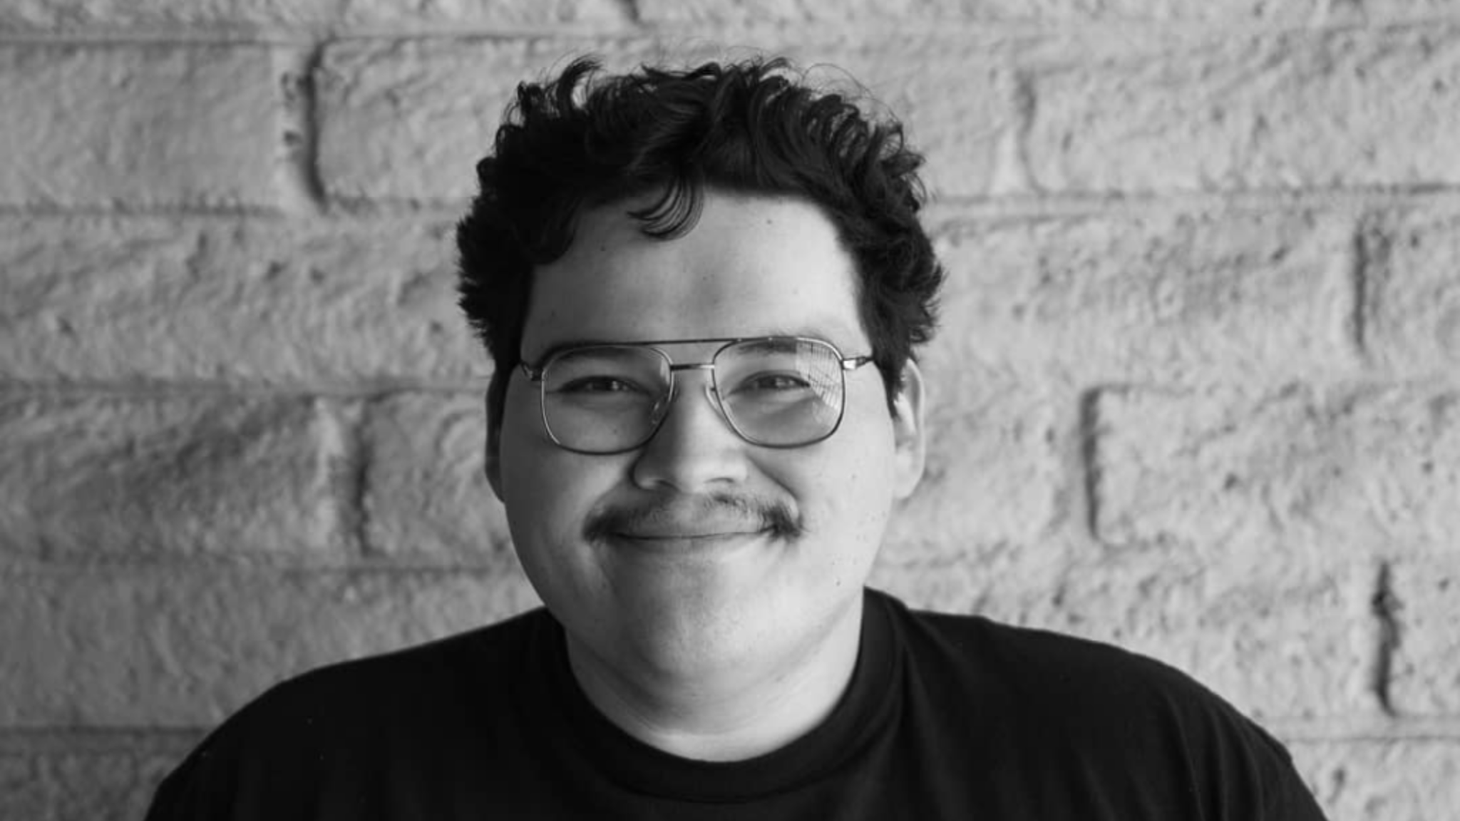 While driving to SXSW from their hometown of Santa Barbara back in 2018, Dante Elephante frontman Ruben Zarate began building a boppy beat and then passed the guitar to his bass player.